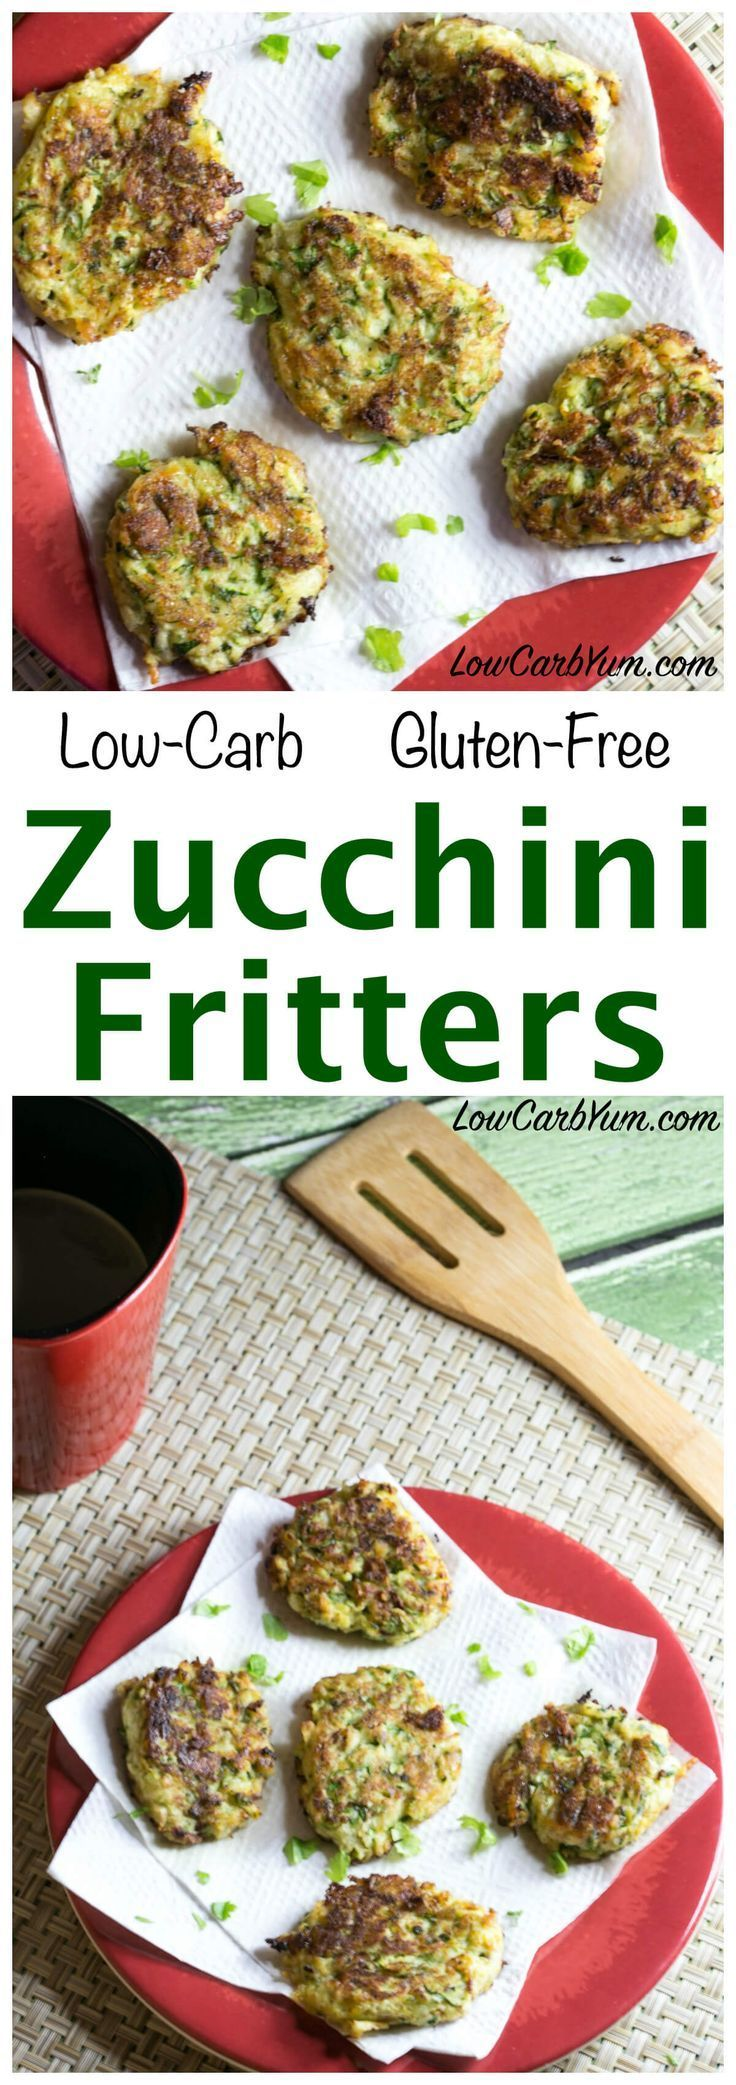 will love these healthier coconut flour zucchini fritters made low carb and gluten free. Serve them as an appetizer or a side to compliment your meal. LCHF Keto Atkins Recipe